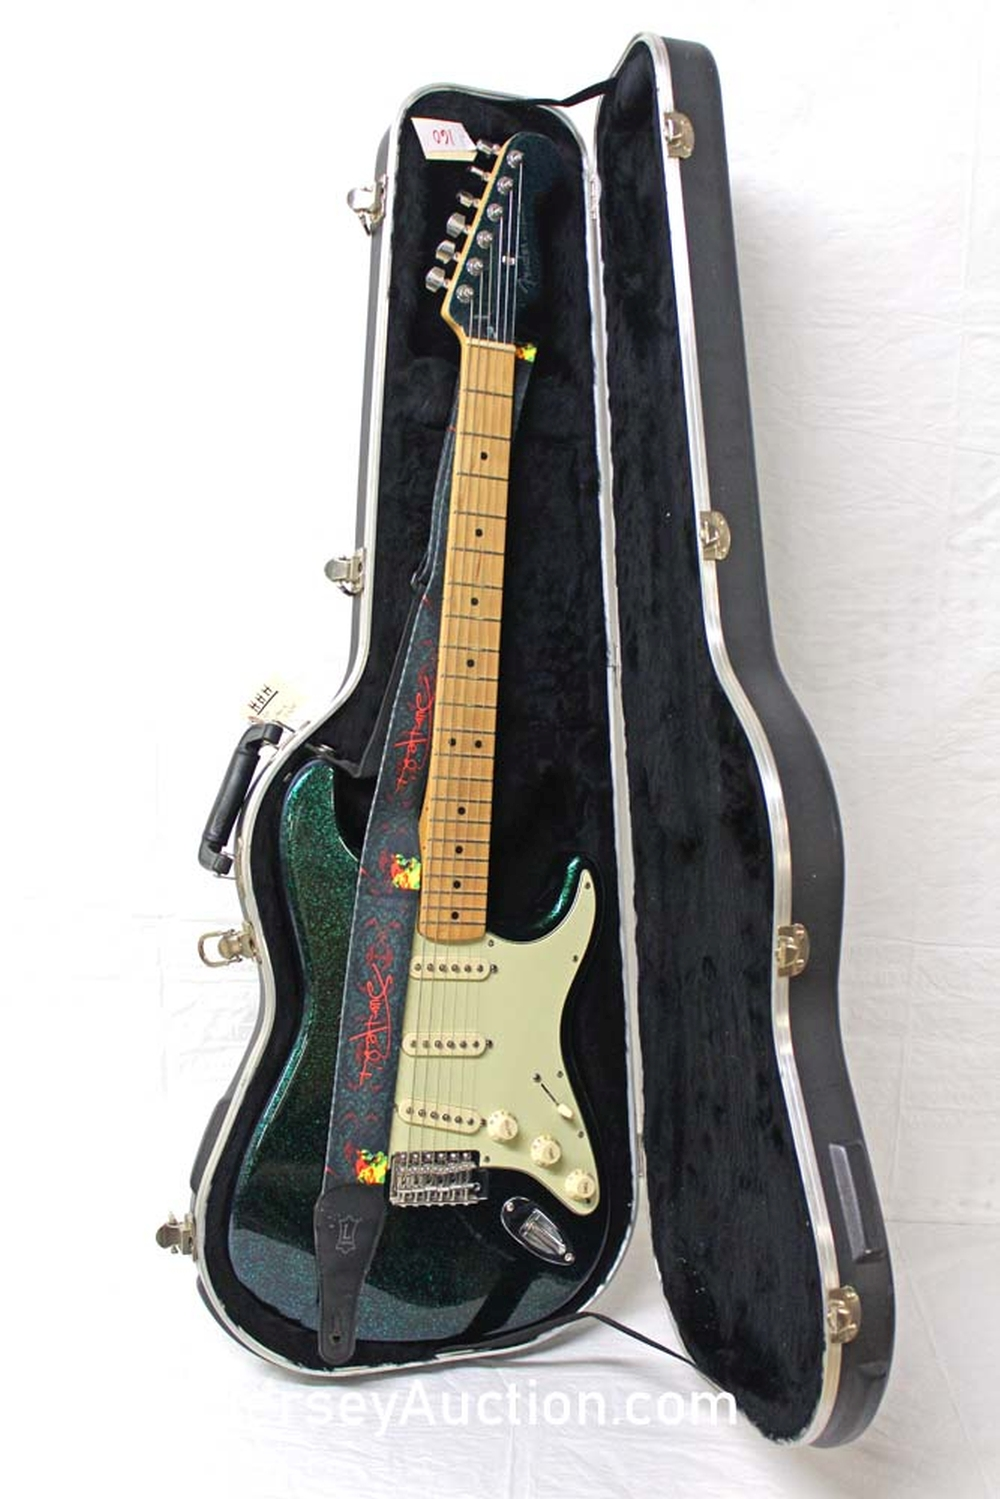 2004 Fender Special Run, Stratocaster, Made in Mexico, Flip Flop Finish in the Green (made for couple of months), single single single, painted head stock, maple neck, s/n mz4103660, with hard case, perfect - excellent condition